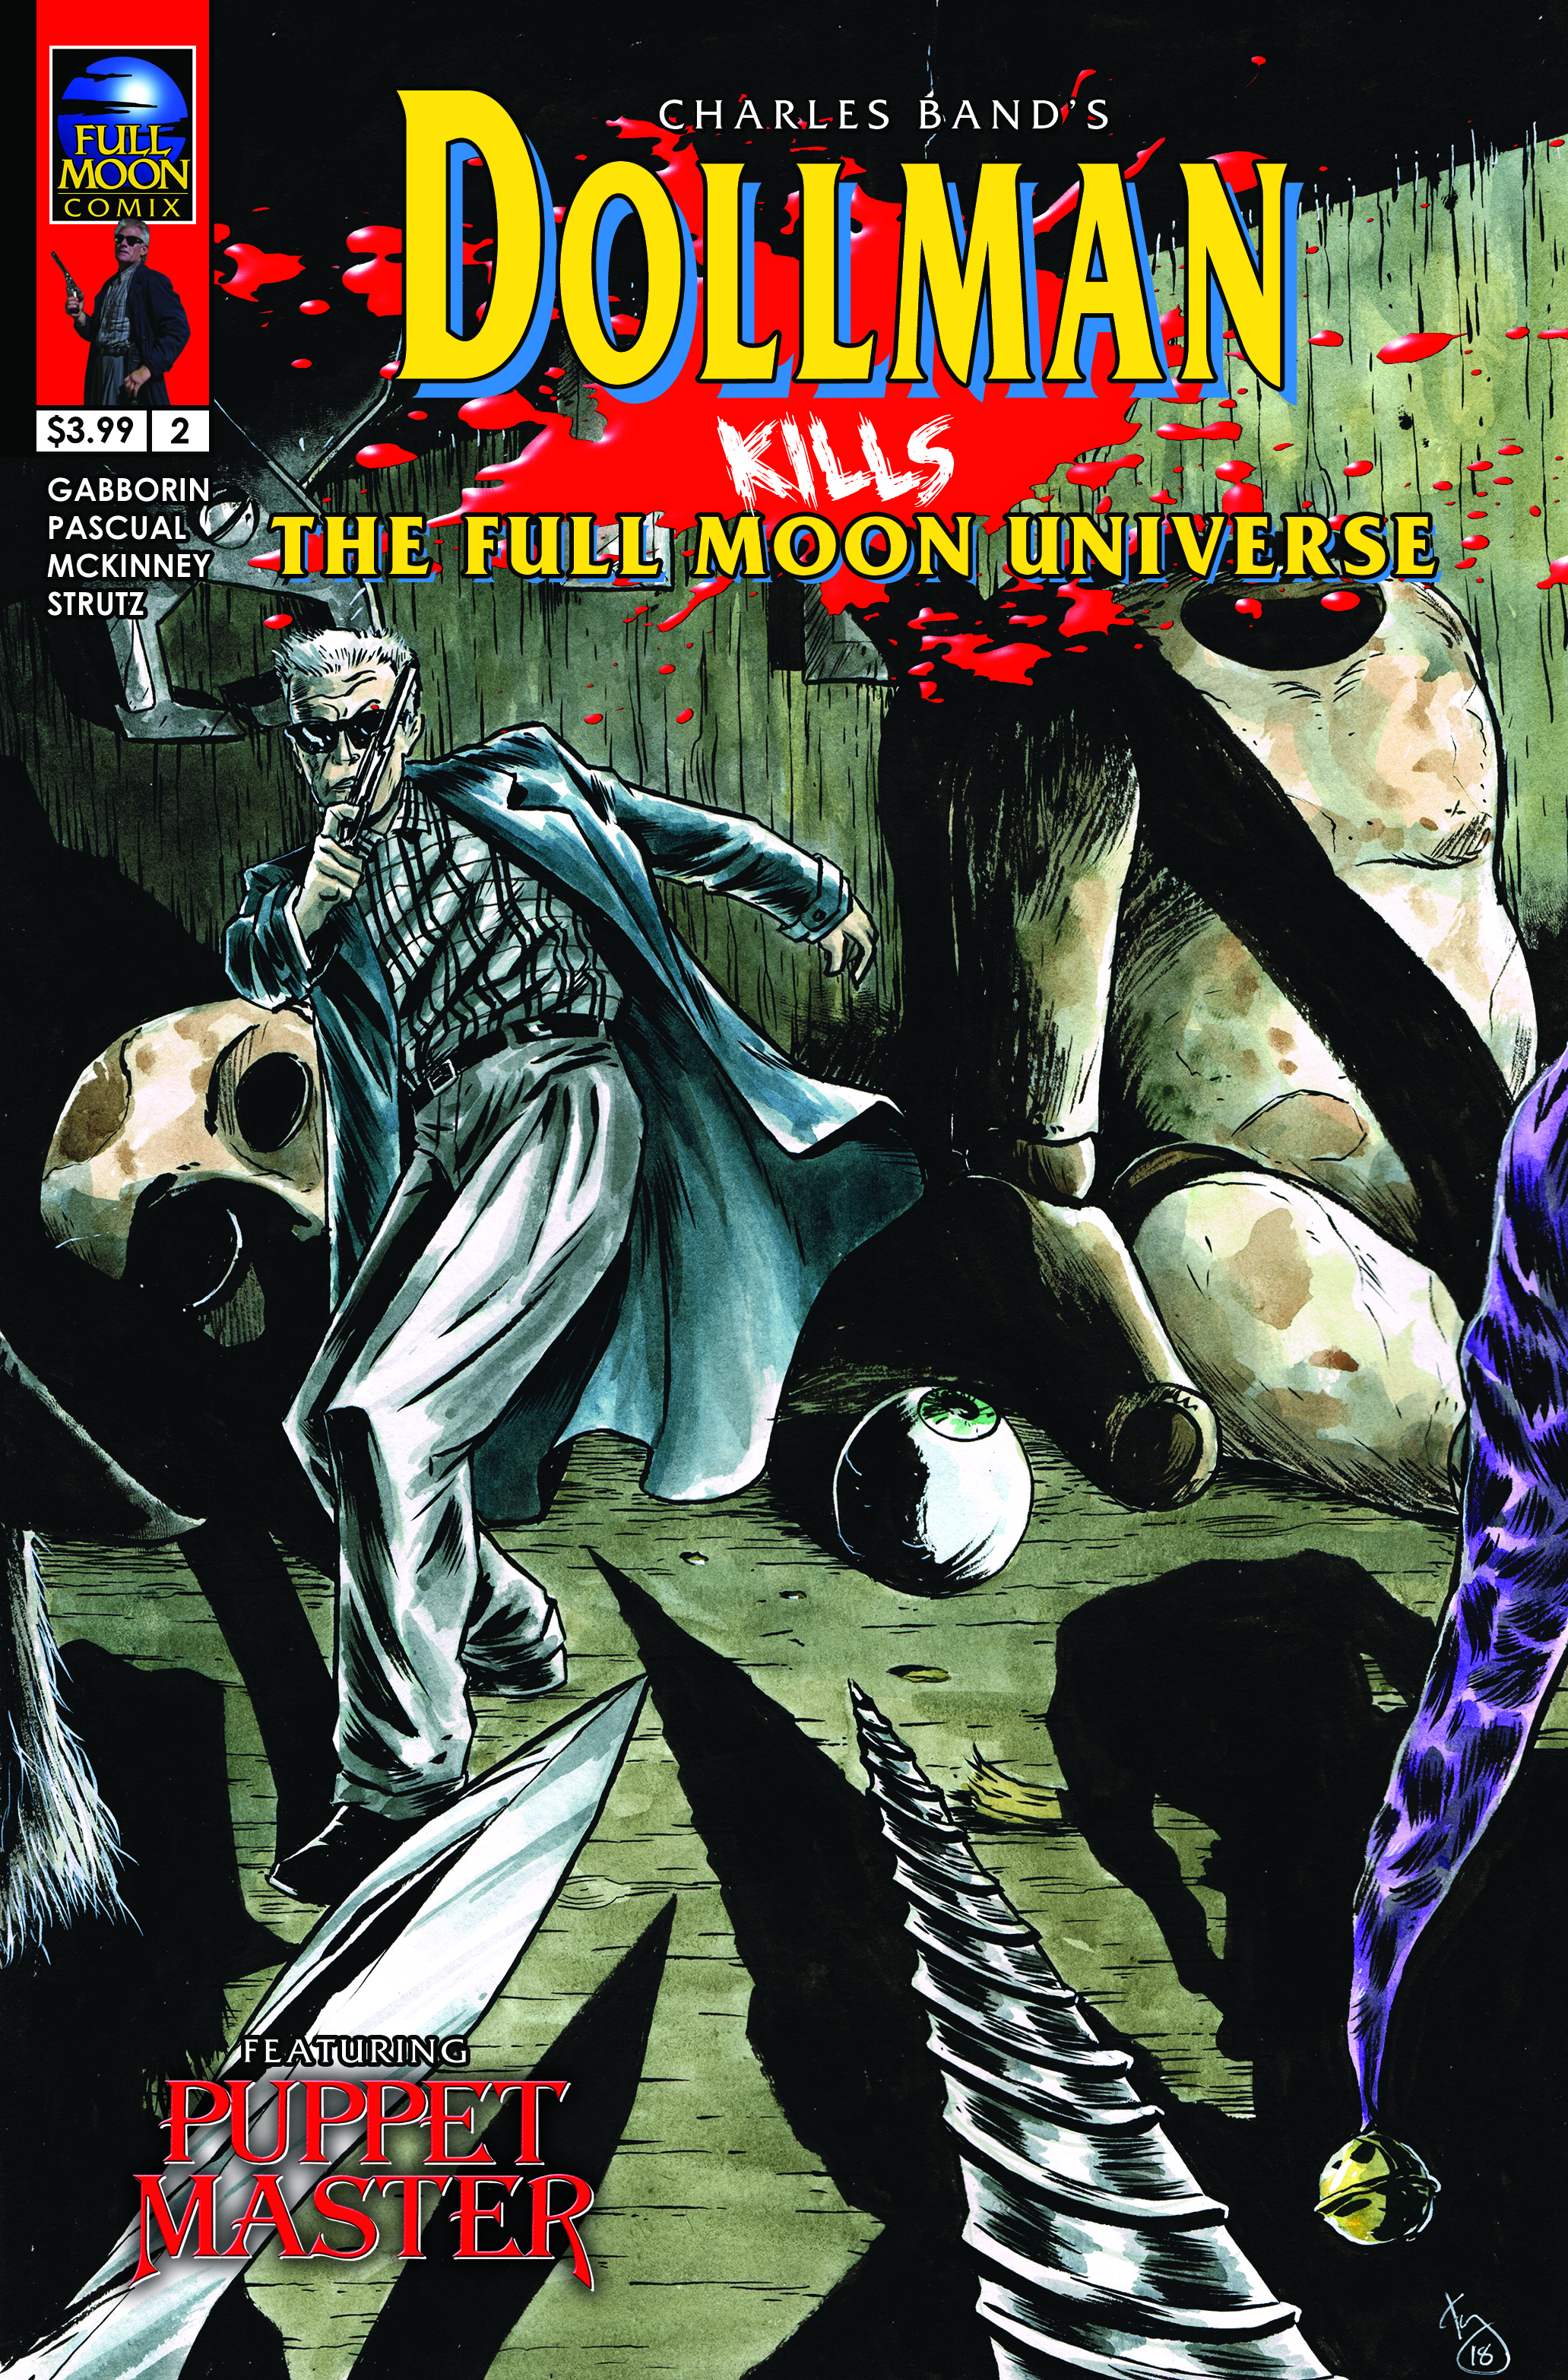 Dollman Kills The Full Moon Universe #2 (Kelly Williams cover)